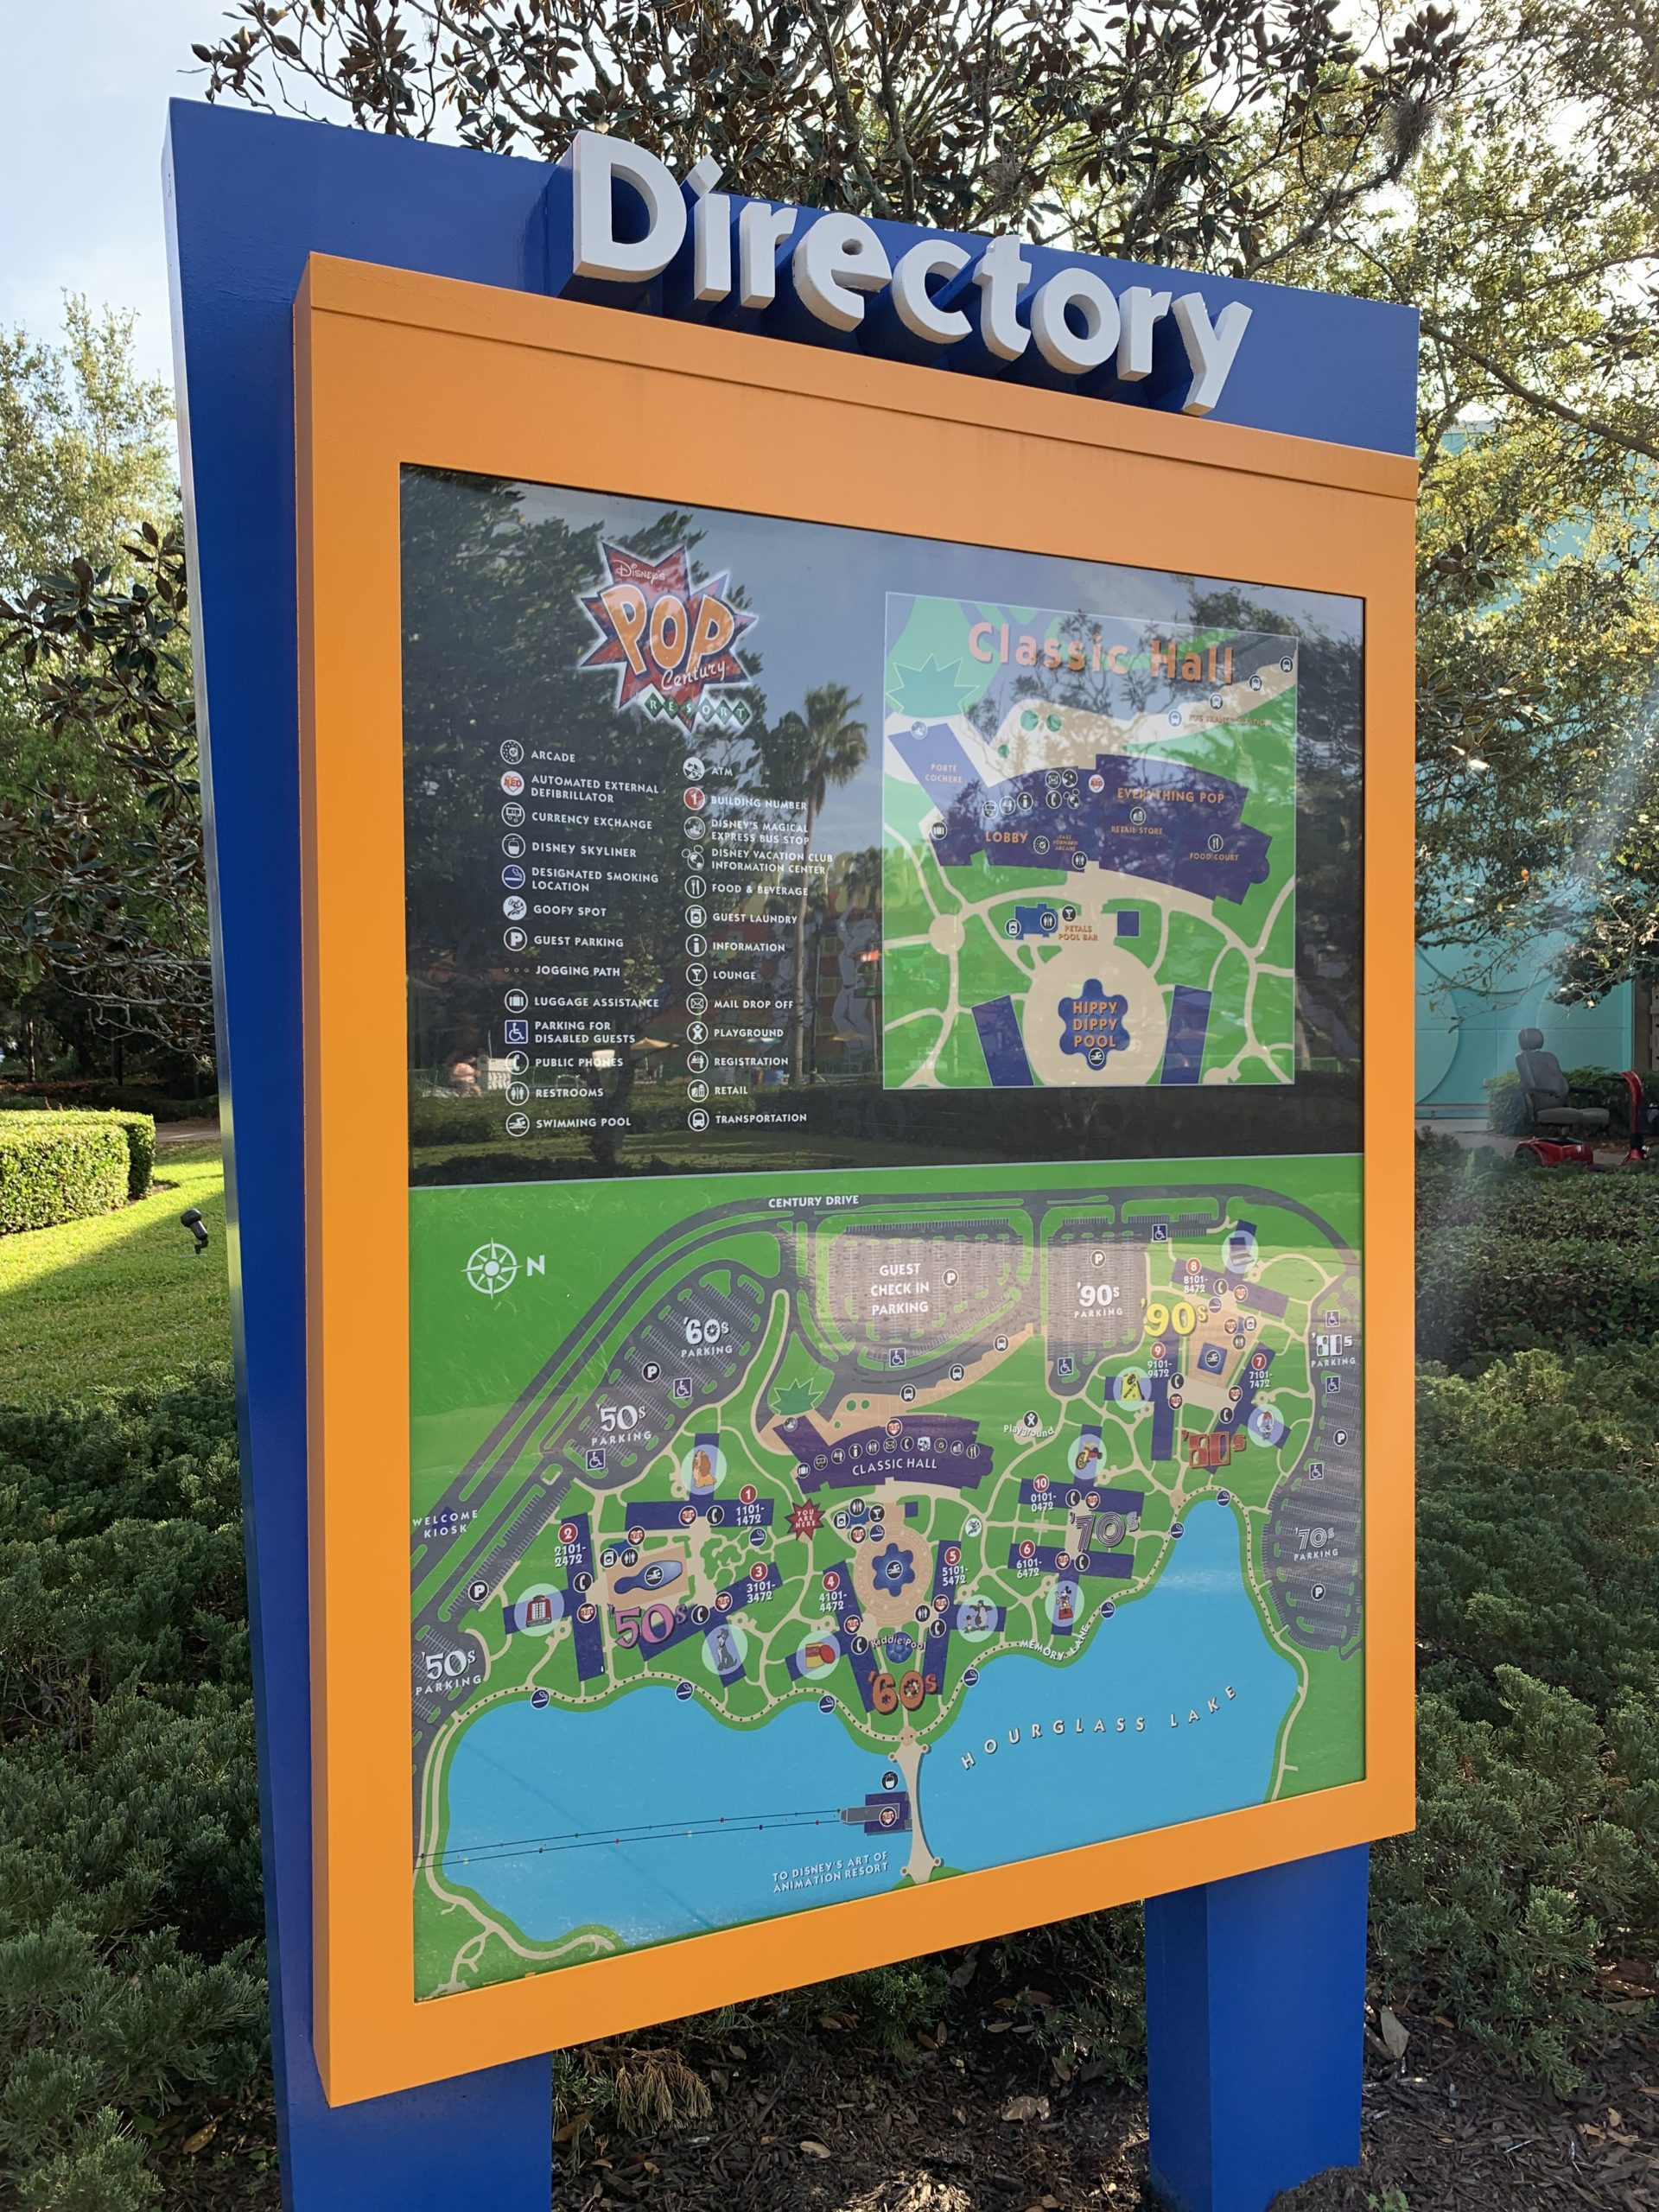 Resort map at the pop century